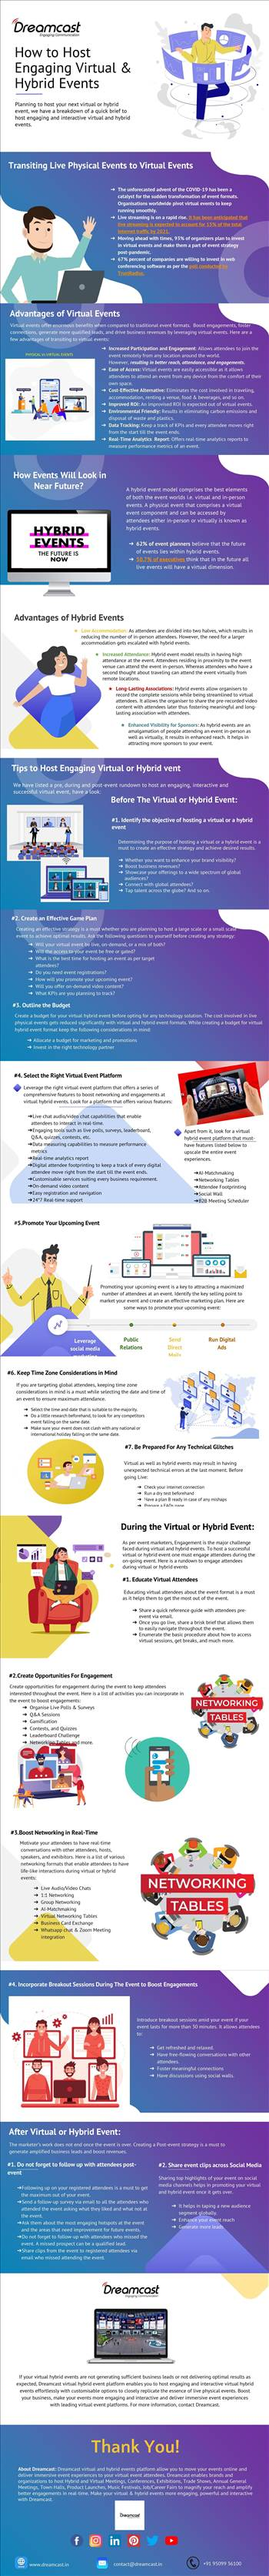 How to Host Engaging Virtual & Hybrid Events.jpg by saanvipatel099